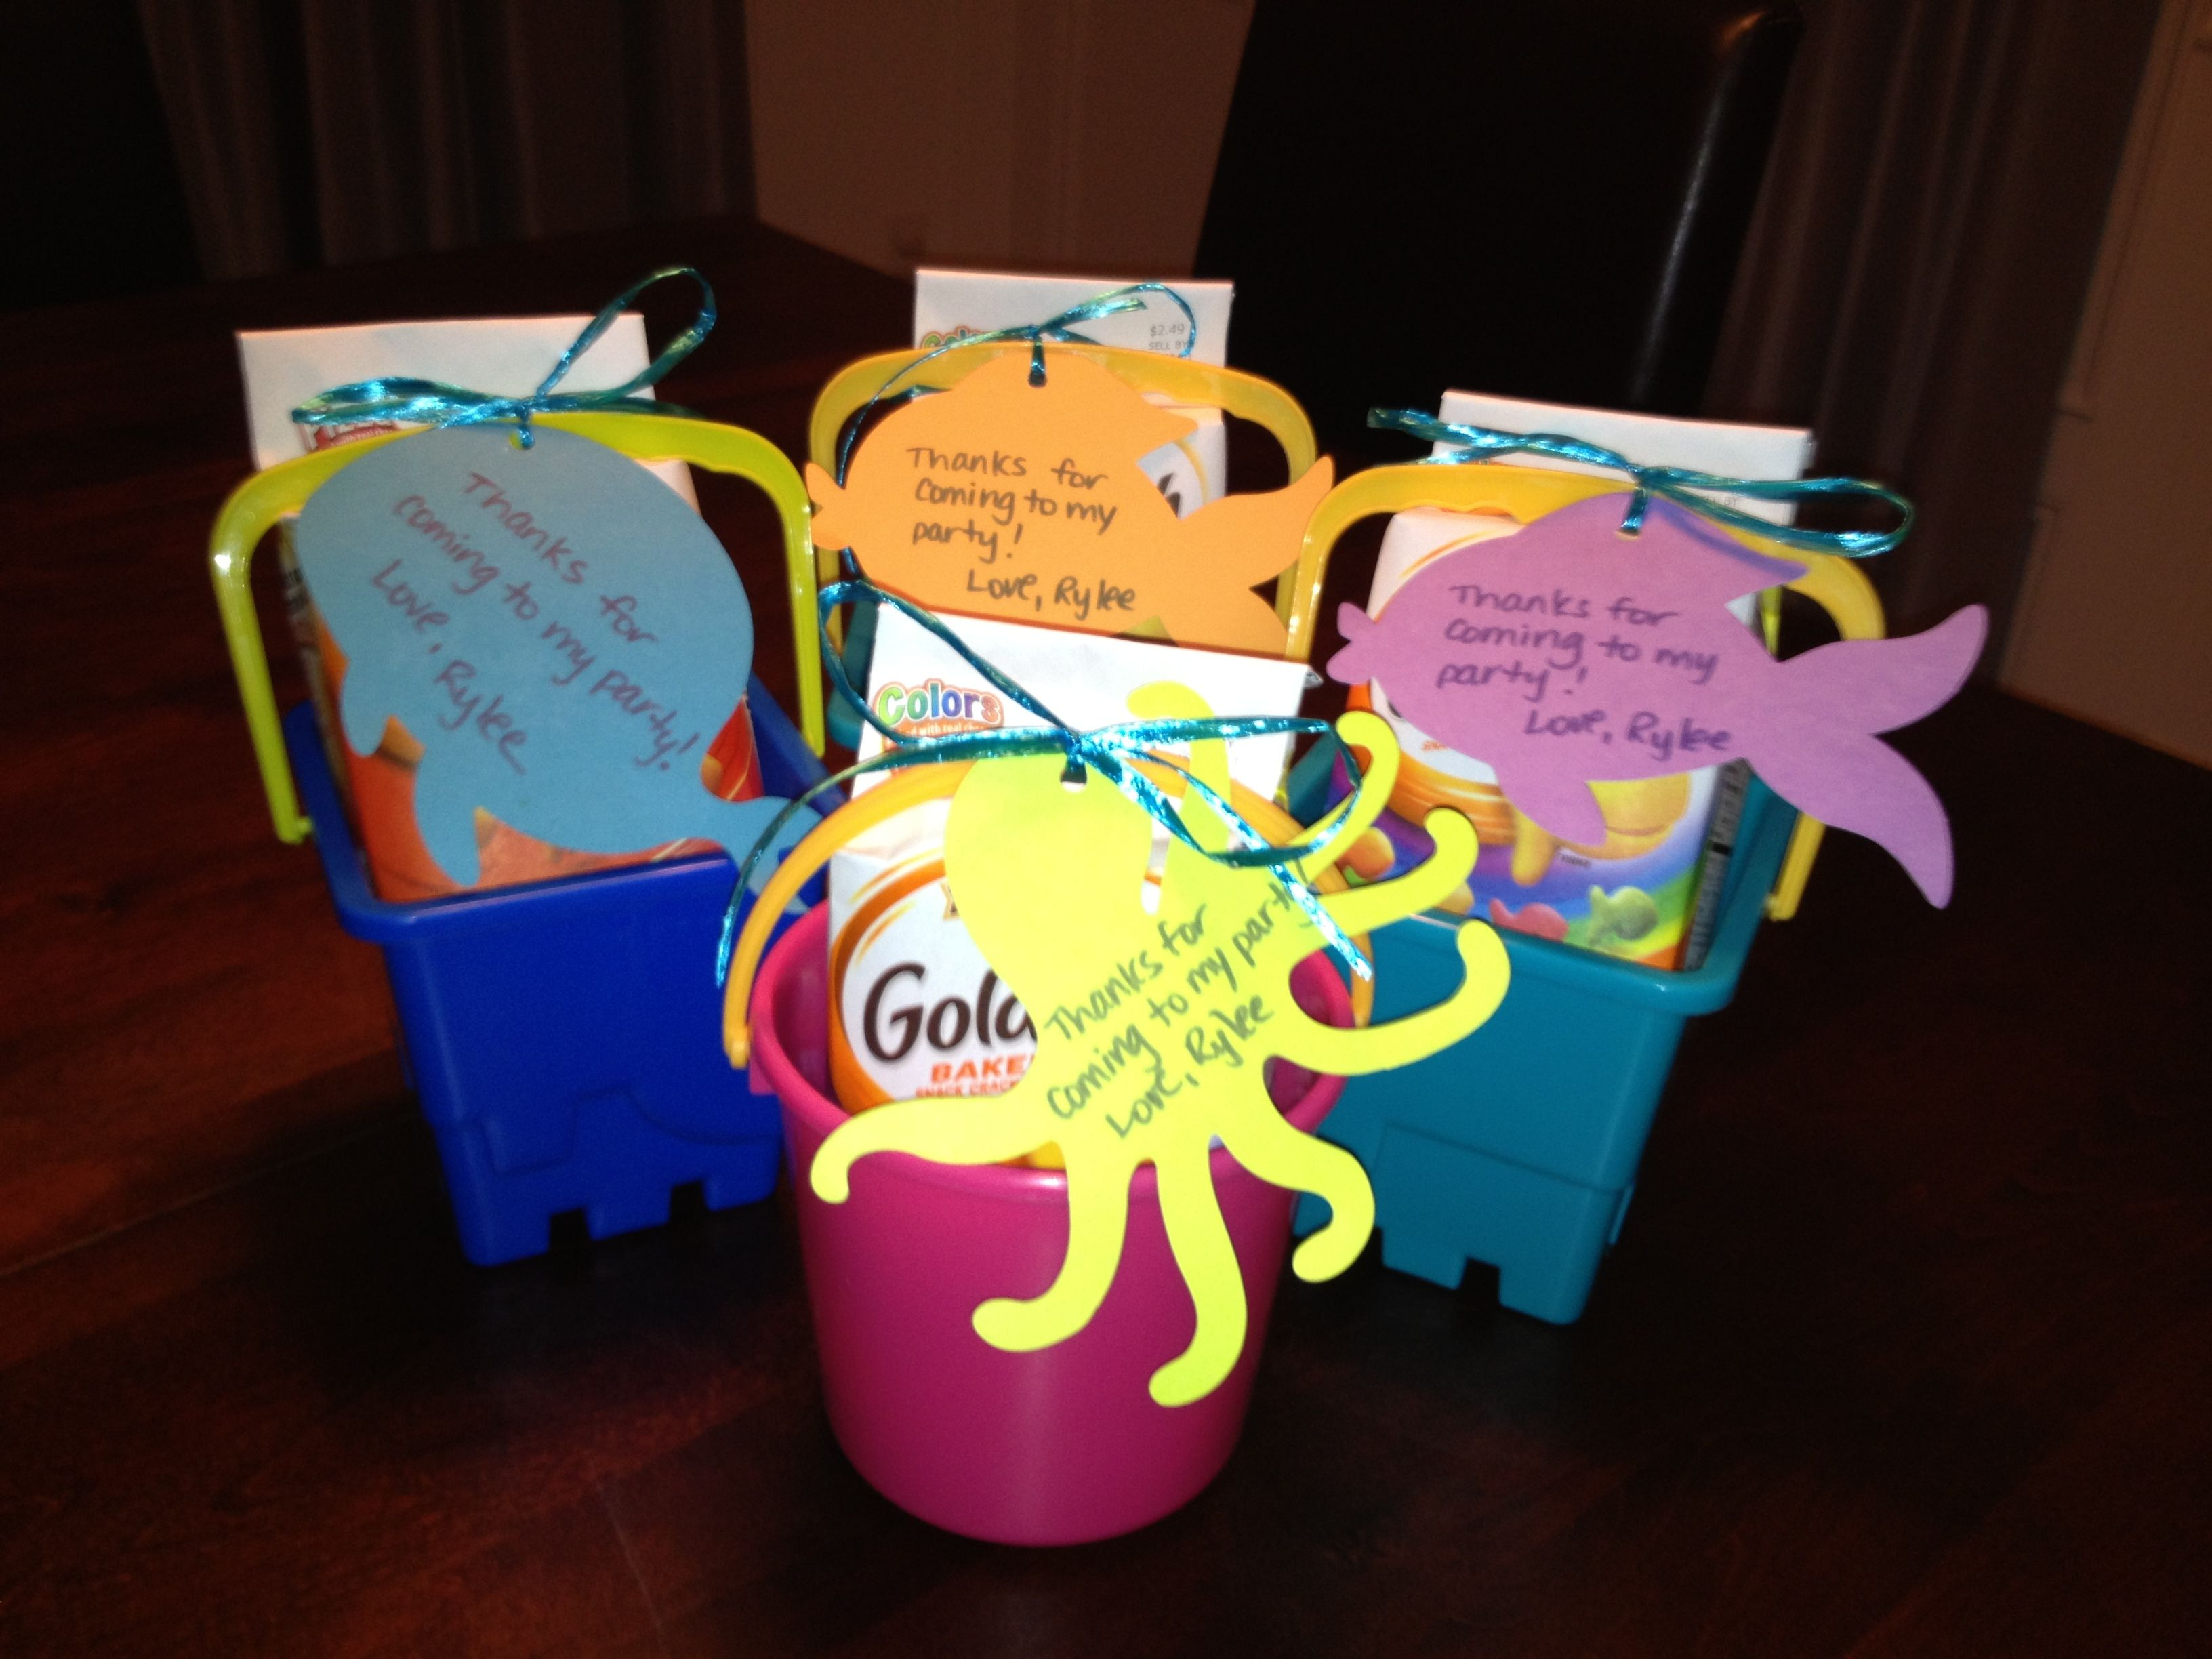 Beach Themed Birthday Party Favors For My 2 Year Old Buckets With Her Favorite Snack Goldfish Turquoise Rafia And Sea Creature Cut